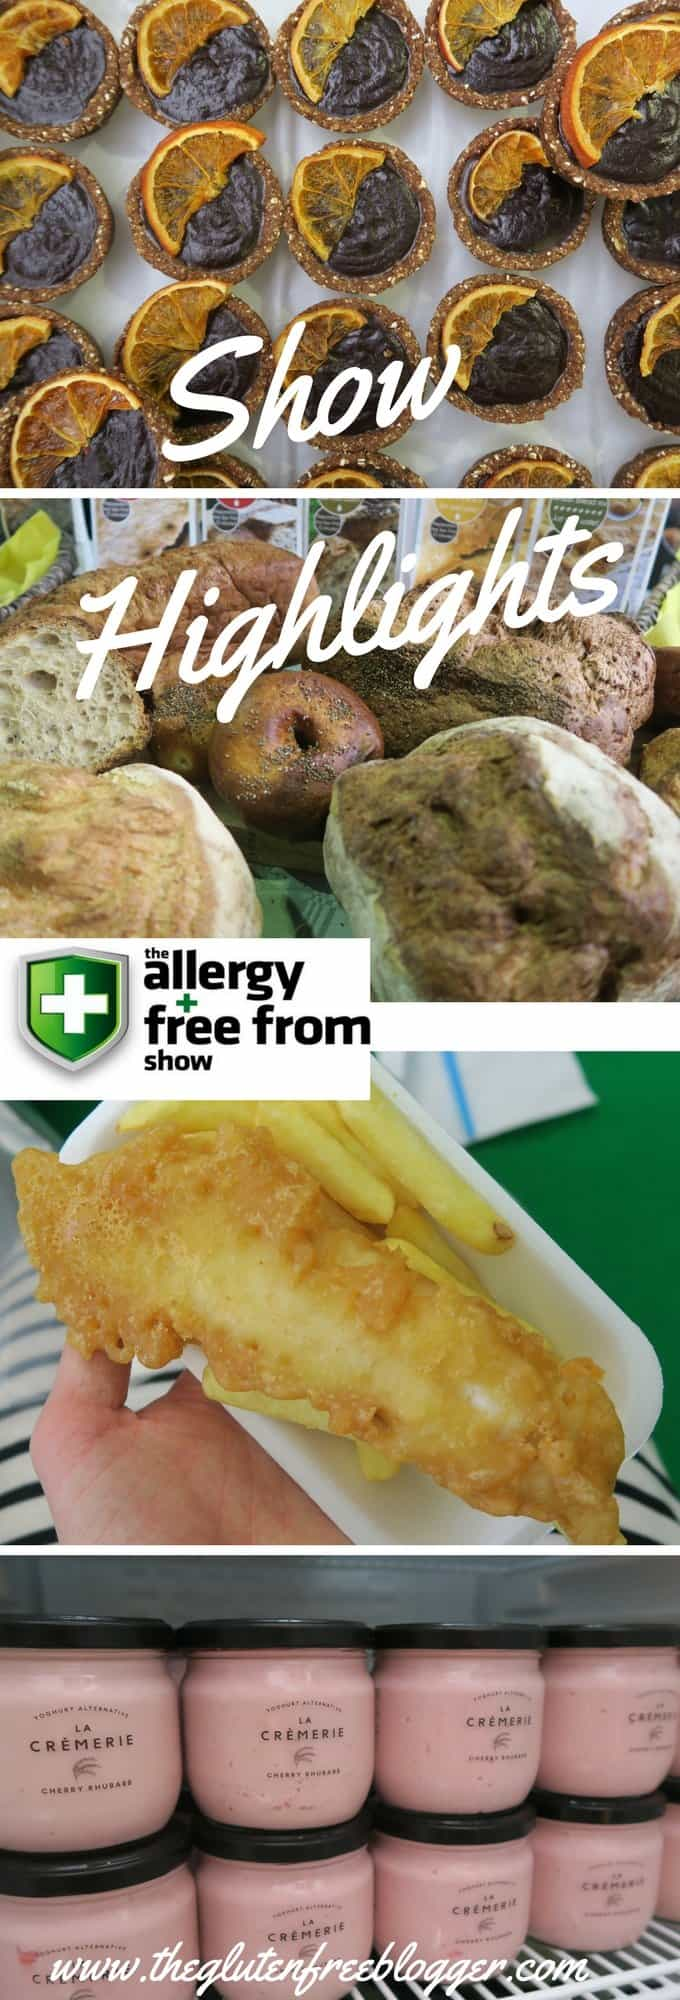 My 8 Highlights from the Allergy and Free From Show London 2017 - www.theglutenfreeblogger.com